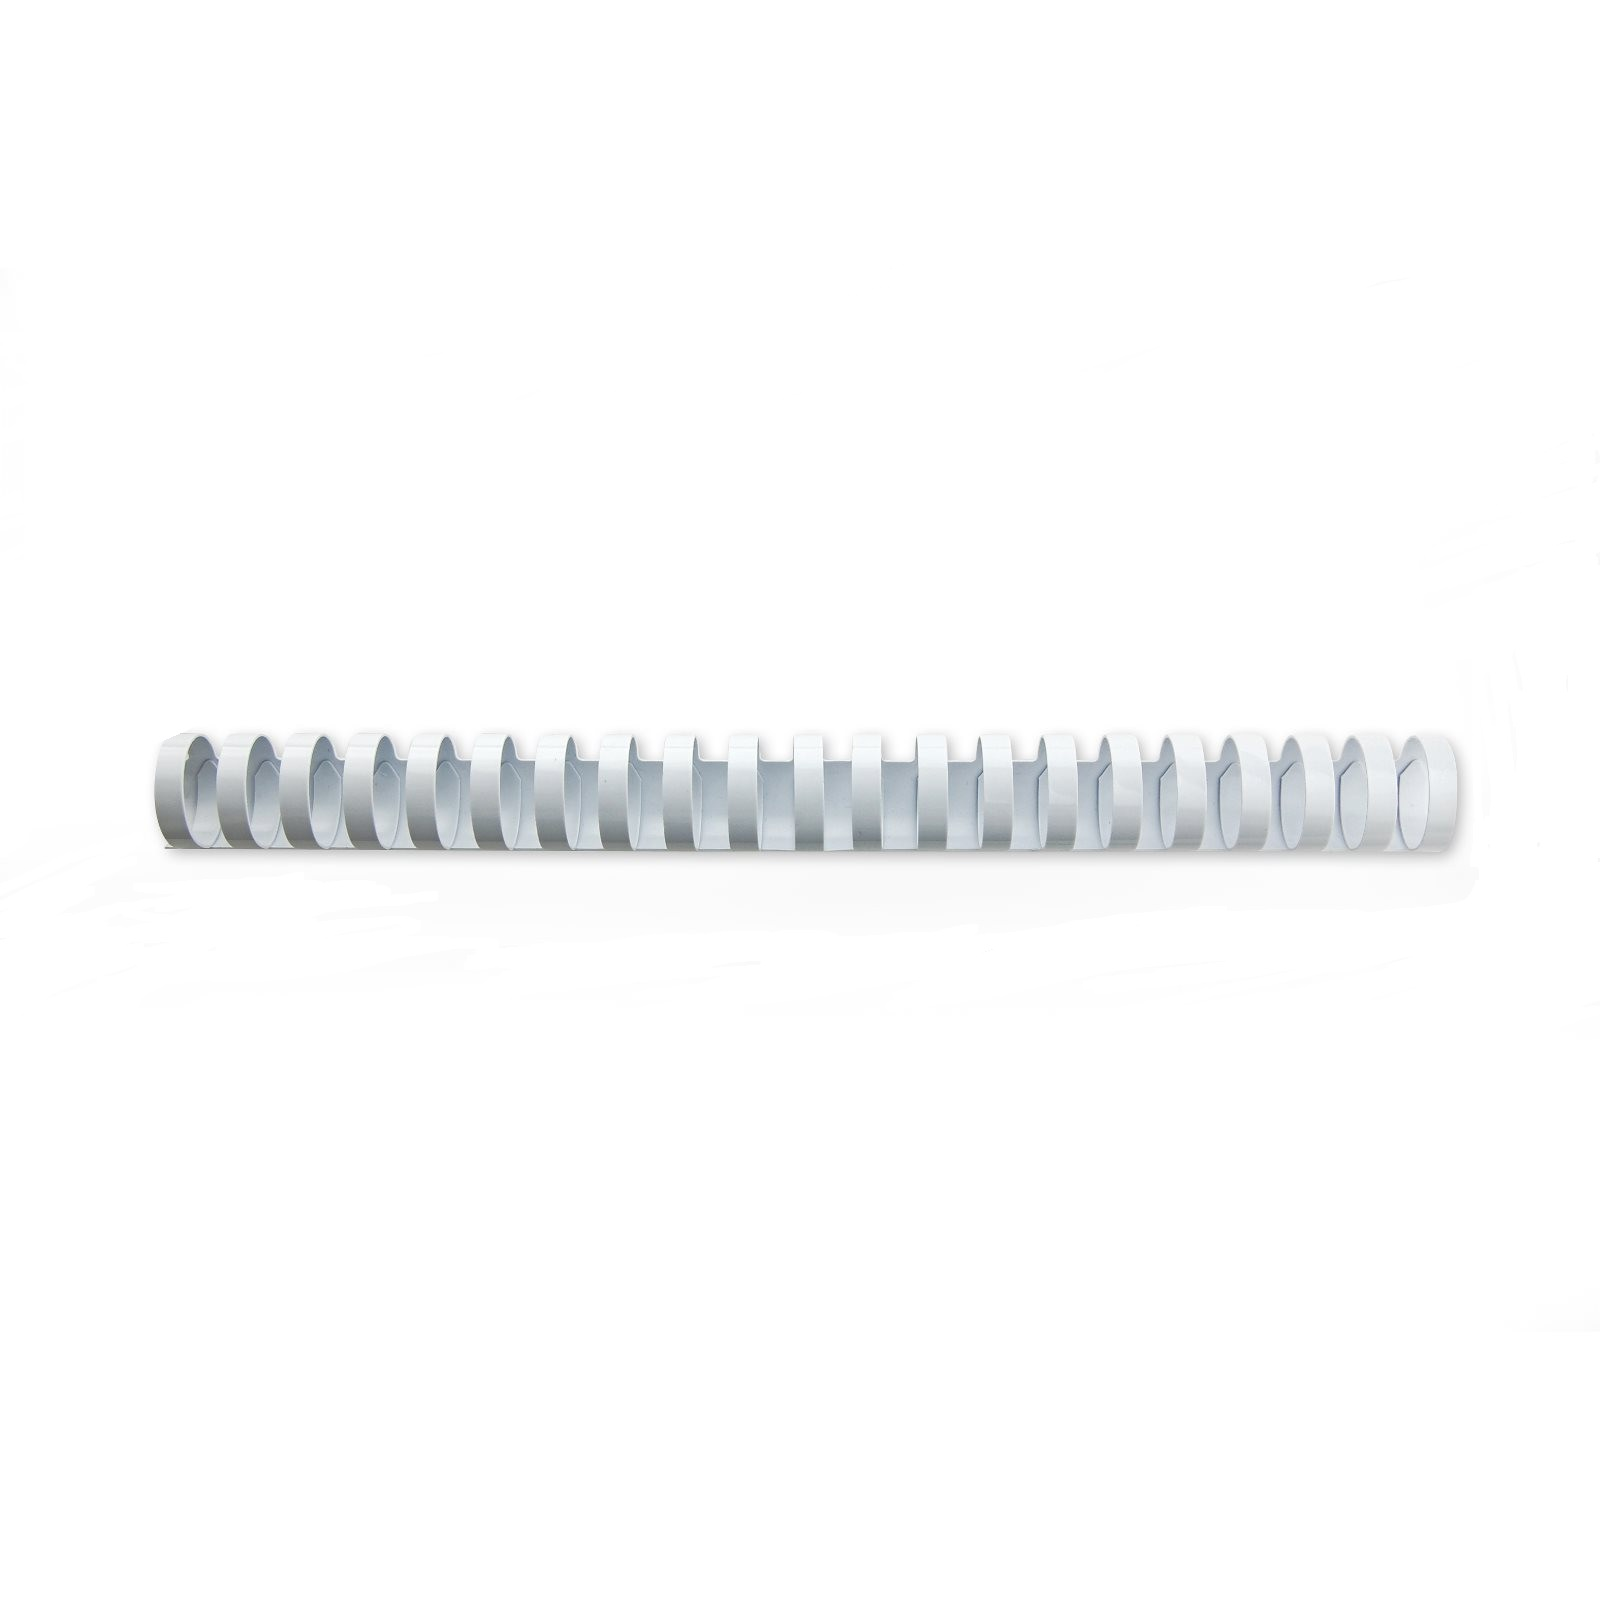 GBC Binding Combs 21 Ring A4 10mm White 4028195 (PK100)